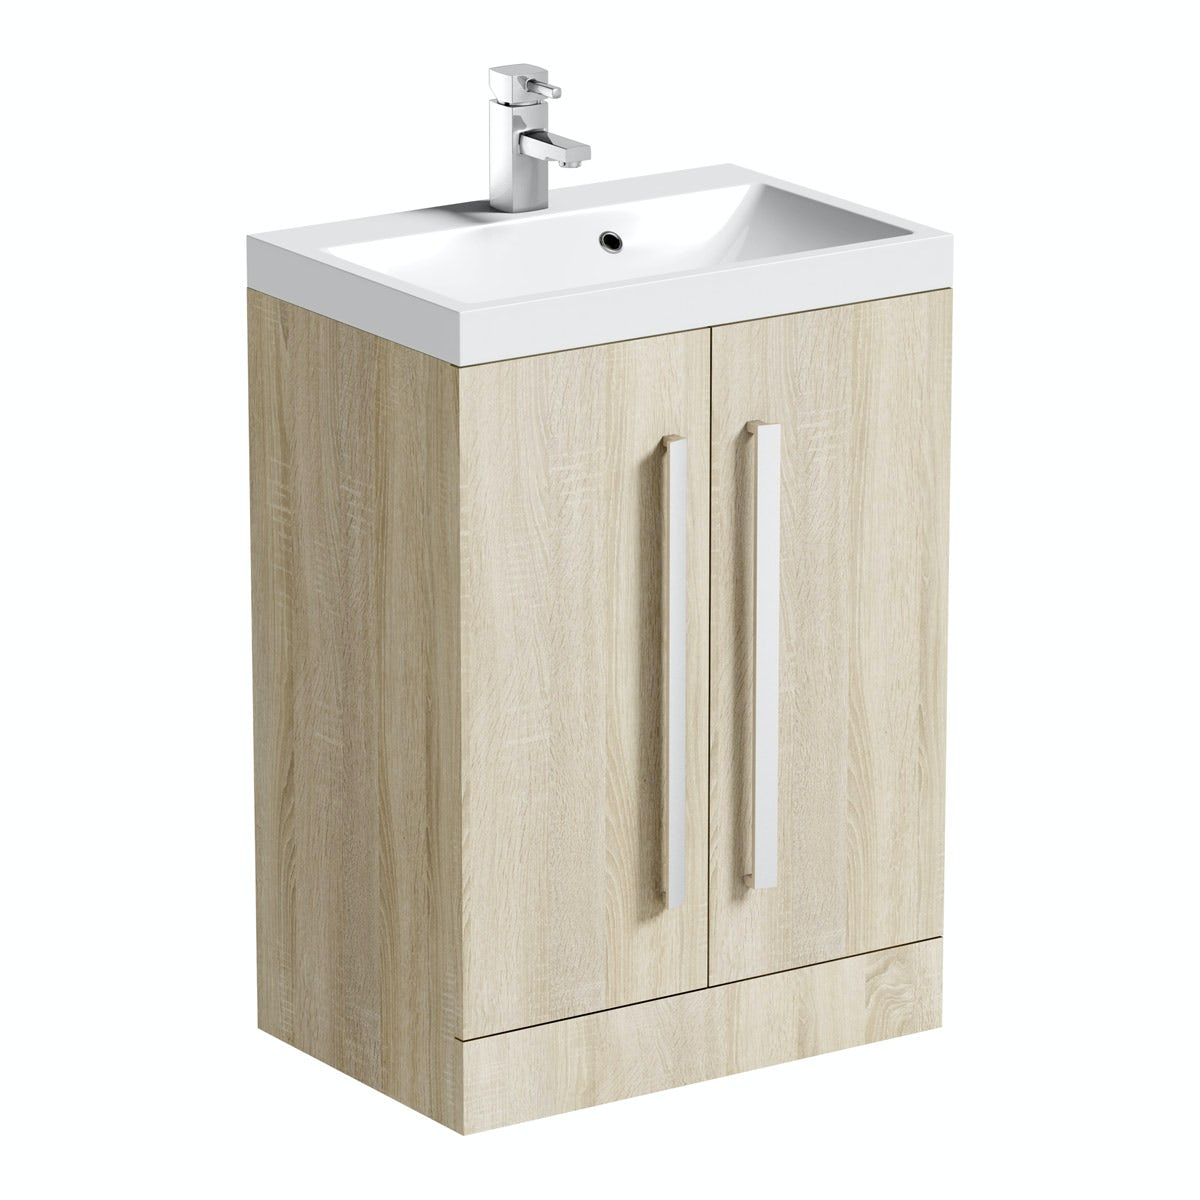 Wye oak 600 vanity unit with basin